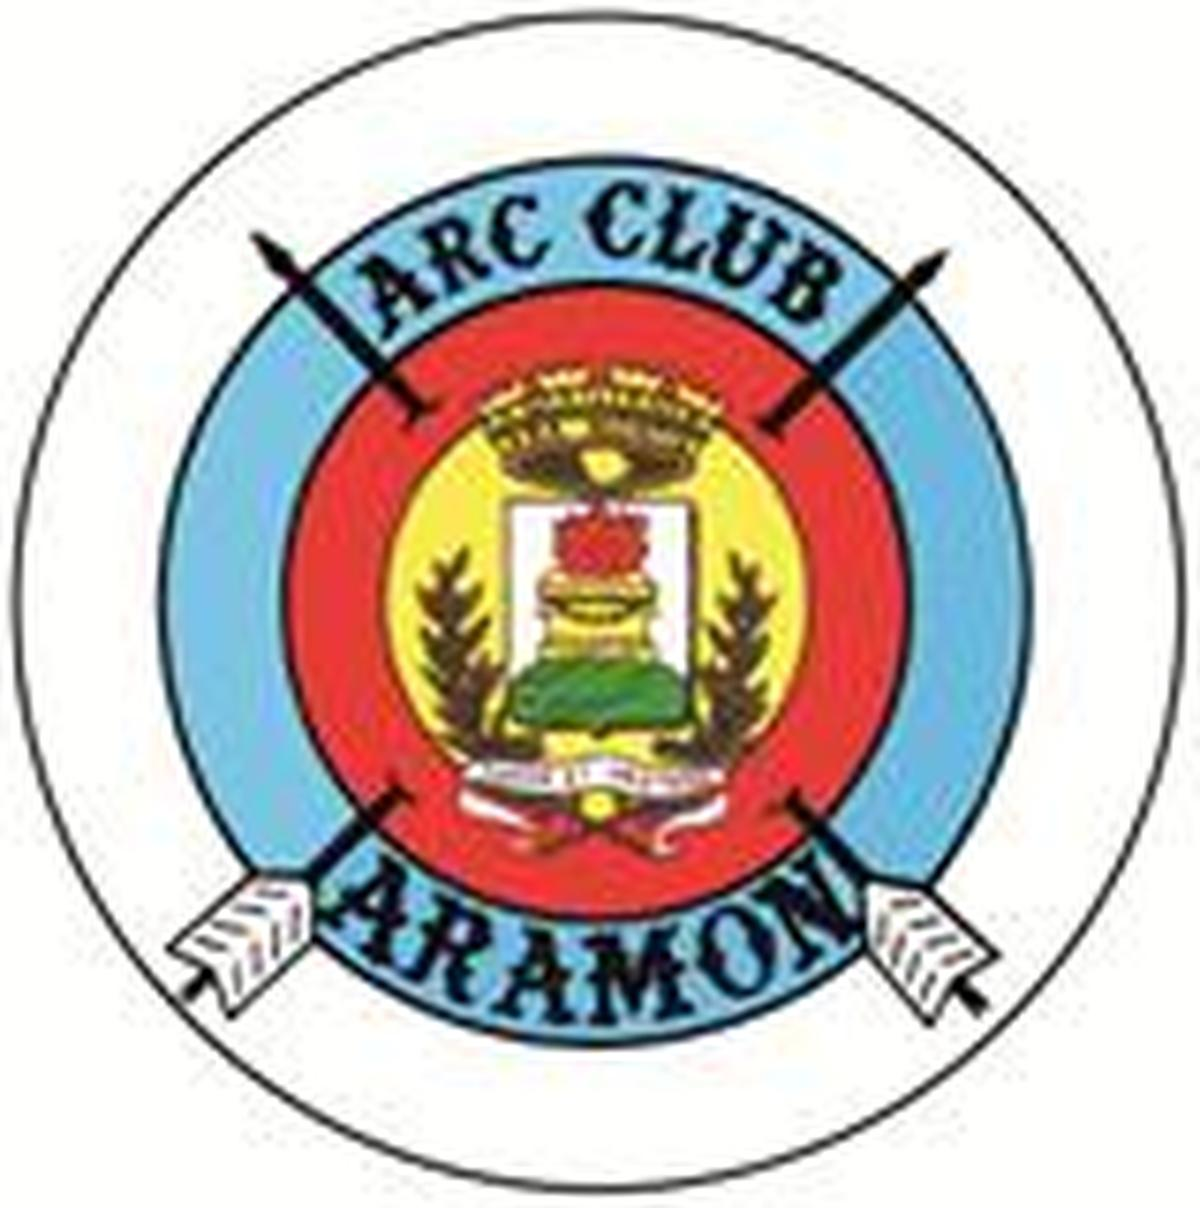 ARC CLUB ARAMON